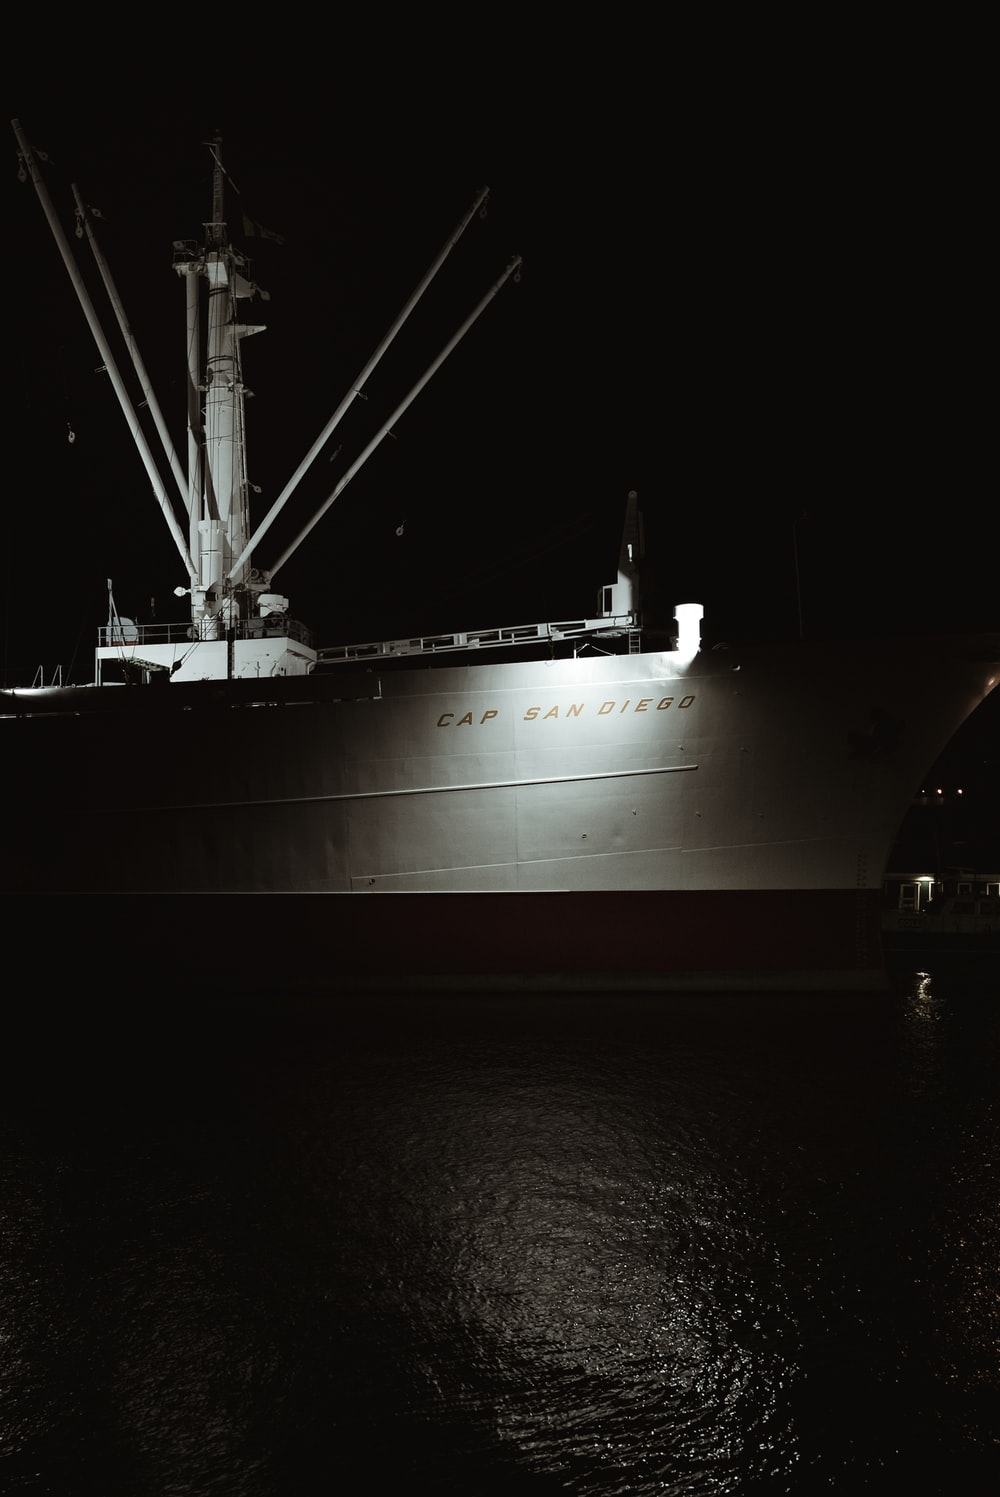 white ship on body of water during night time